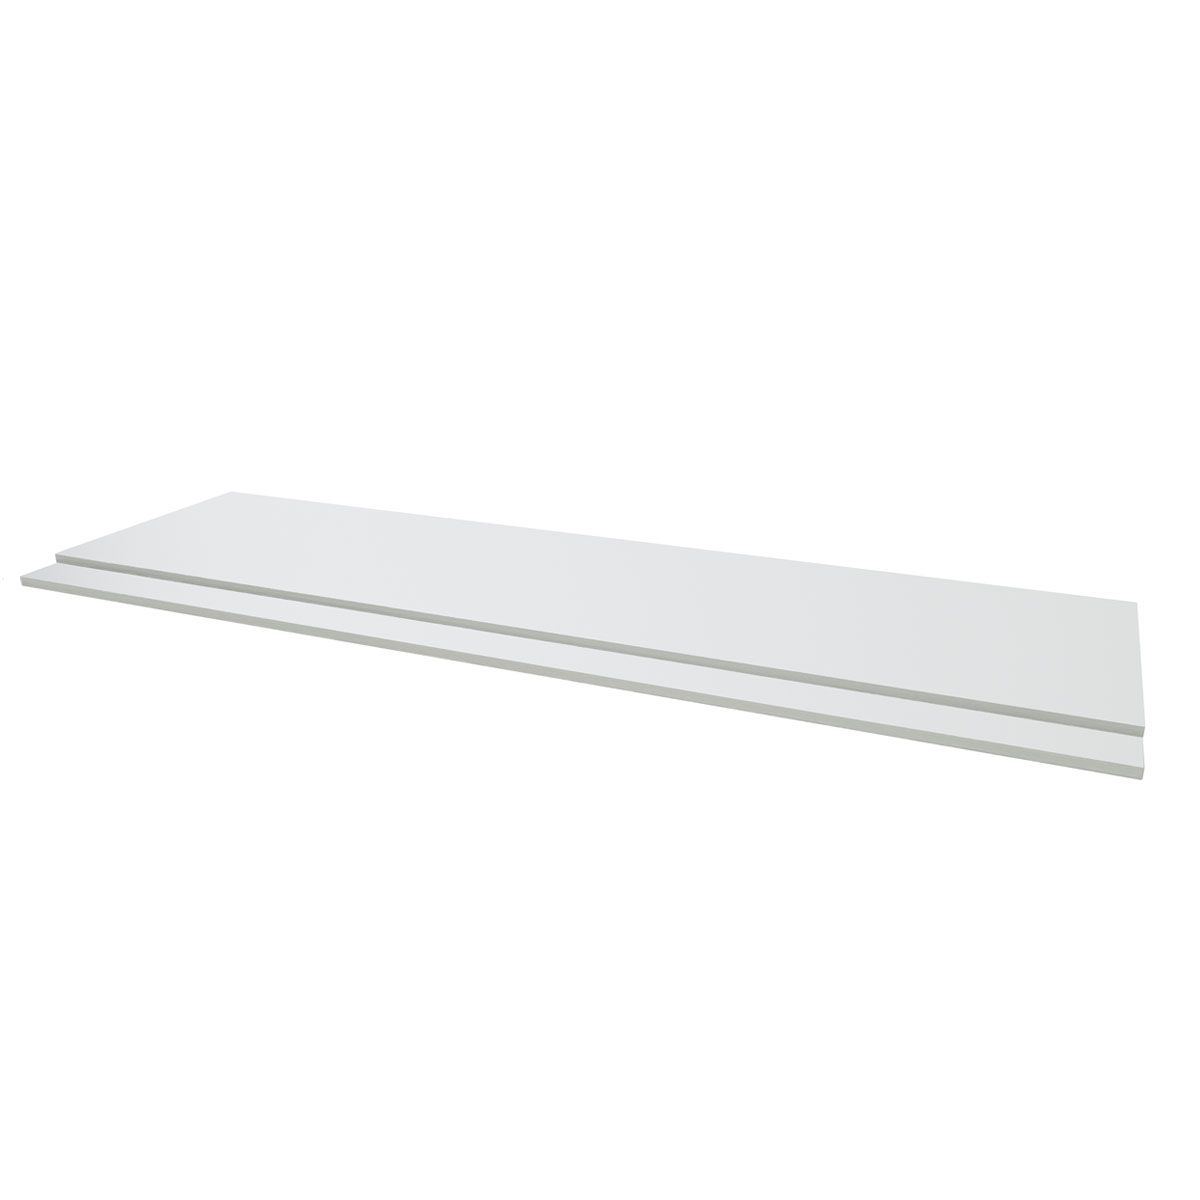 Kartell Purity White 2 Piece Front Bath Panel 1700mm